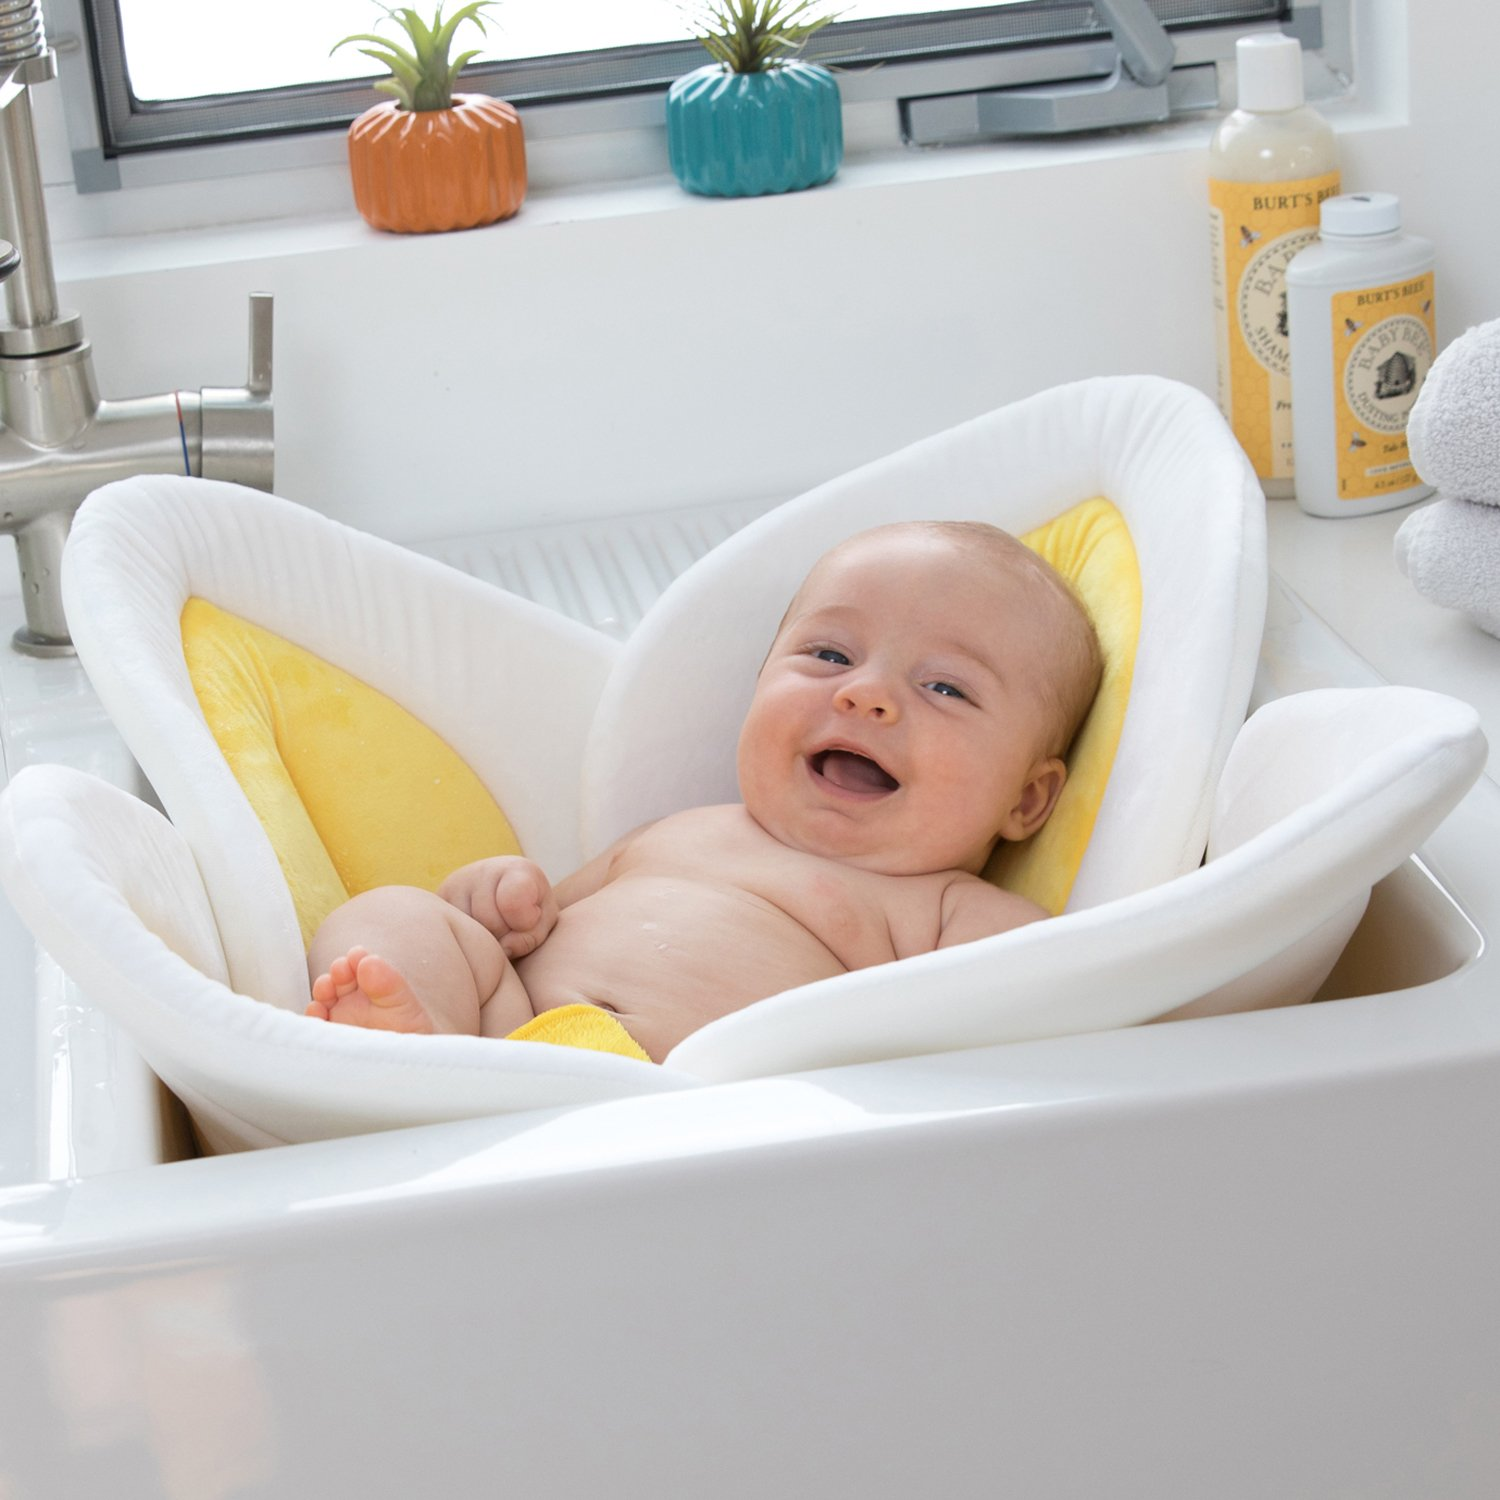 Amazon.com : Blooming Bath Lotus - Baby Bath (Yellow) : Baby